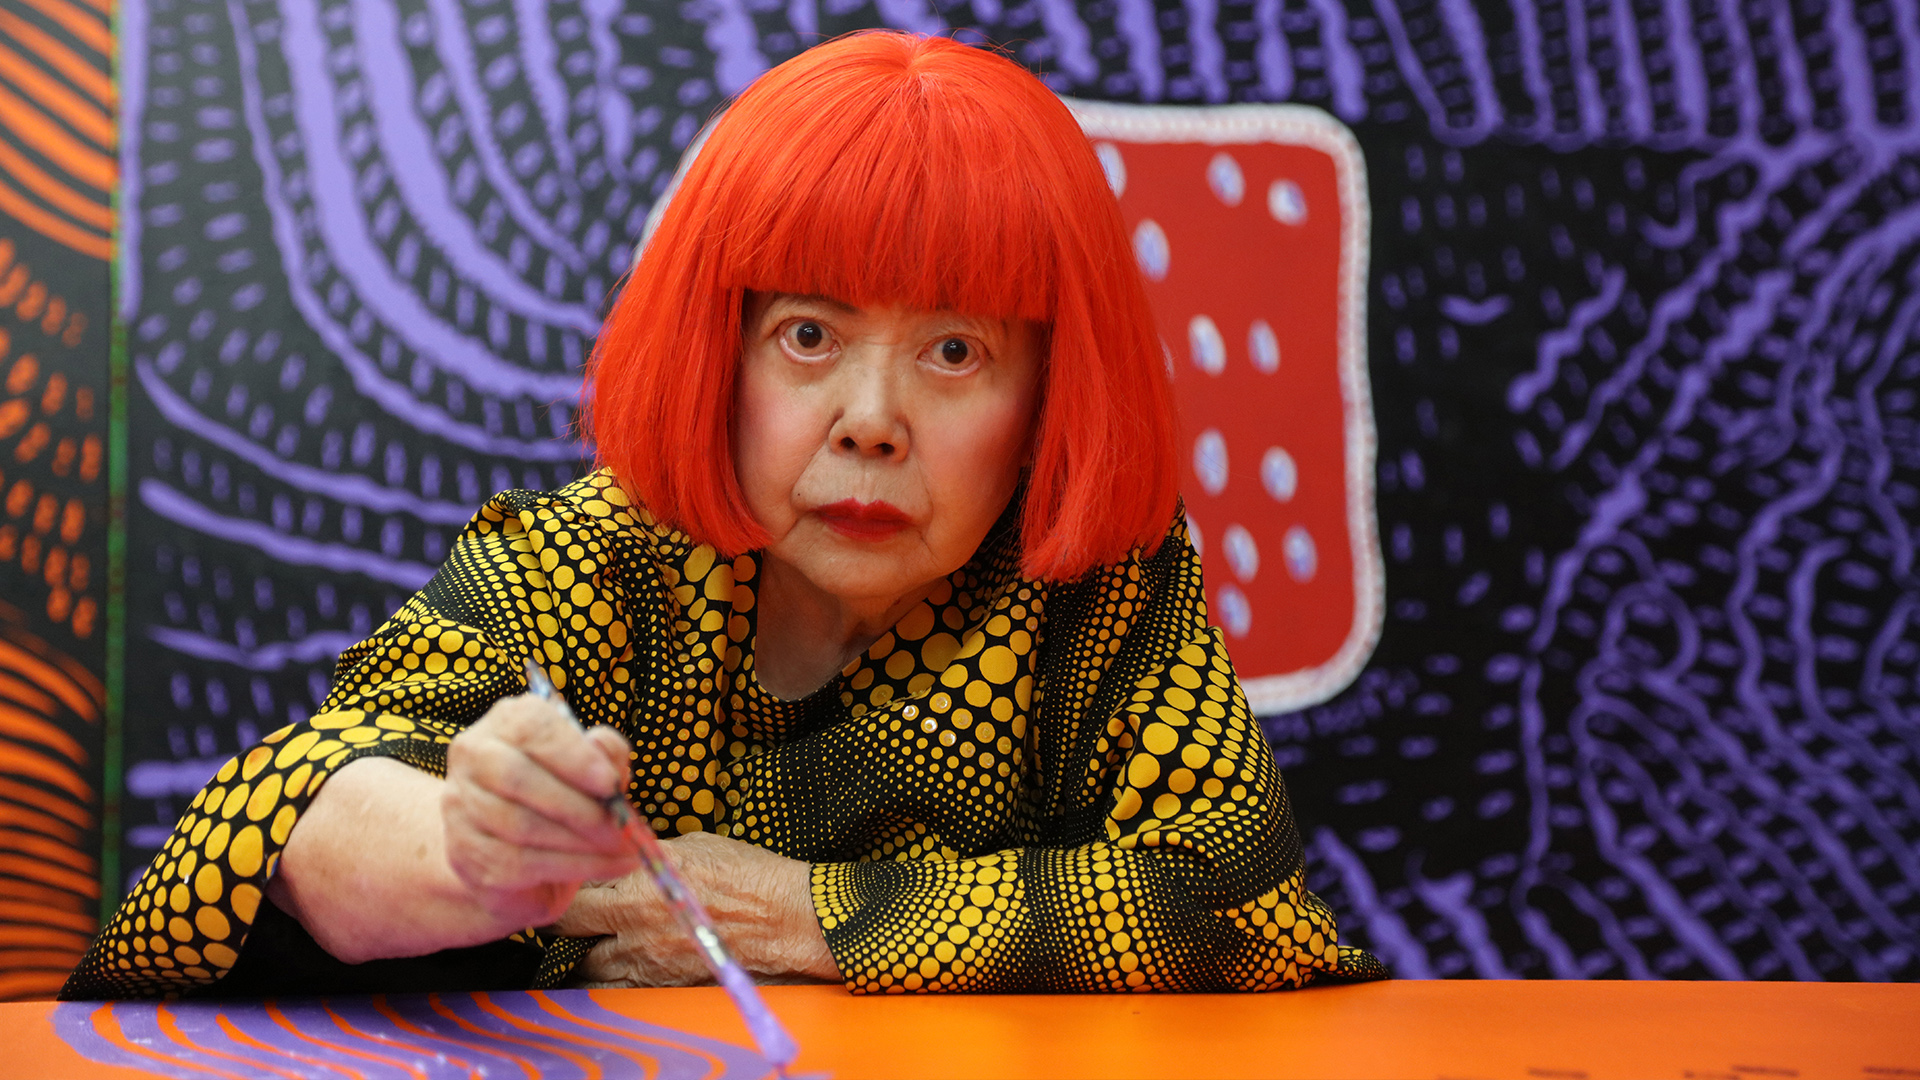 YAYOI KUSAMA @ VICTORIA MIRO   She's small but mighty. She has a fierce bright orange bob cut. She's the queen of polka dots. And she's back. *enter Yayoi Kusama stage left*.  Victoria Miro  have hosted Kusama 11 times previously and each time it's a hugely popular queue fest, so don't dilly dally about. Open till December at their North London gallery the exhibition spreads across it's two main spaces, plus its waterside garden and features all that Kusama is globally recognised for- dots, pumpkins, patterns, infinity mirrors, flower sculptures and more. Both her and her work are instantly recognisable and she shows no sign of slowing down which is all the more impressive when you realise she is nearing 90 years old. NINETY! A bit like Coal Drops Yard, this is yet another Instagram heaven. See you there.  Facebook  |  Instagram  |  Twitter  Image credit: Yayoi Kusama